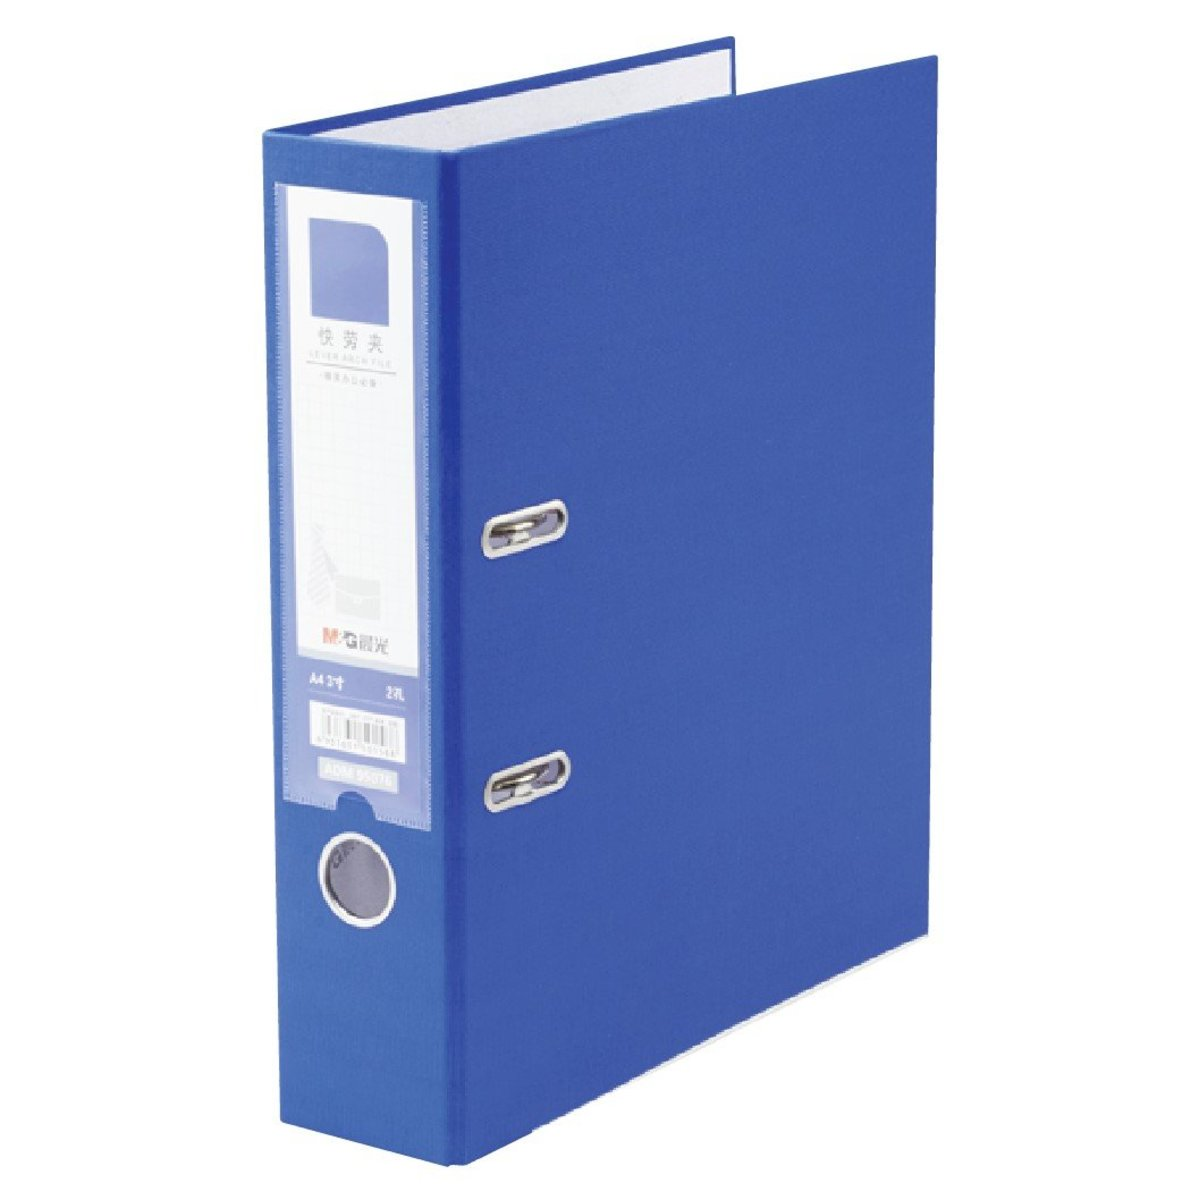 A4 - 3 inches Lever Arch File (Blue Color)